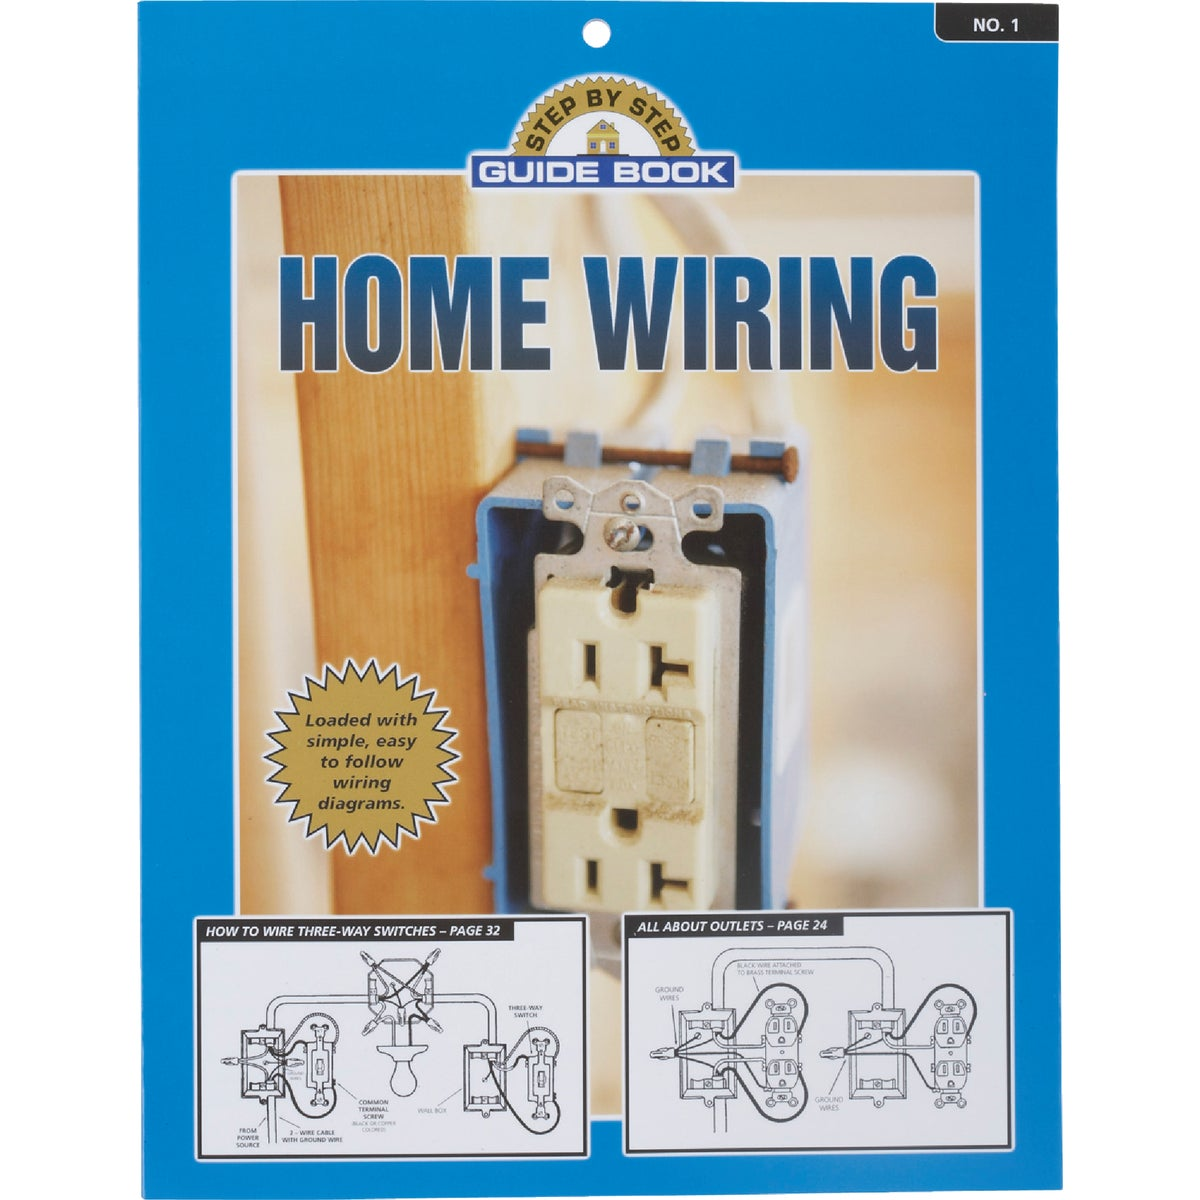 HOME WIRING BOOK